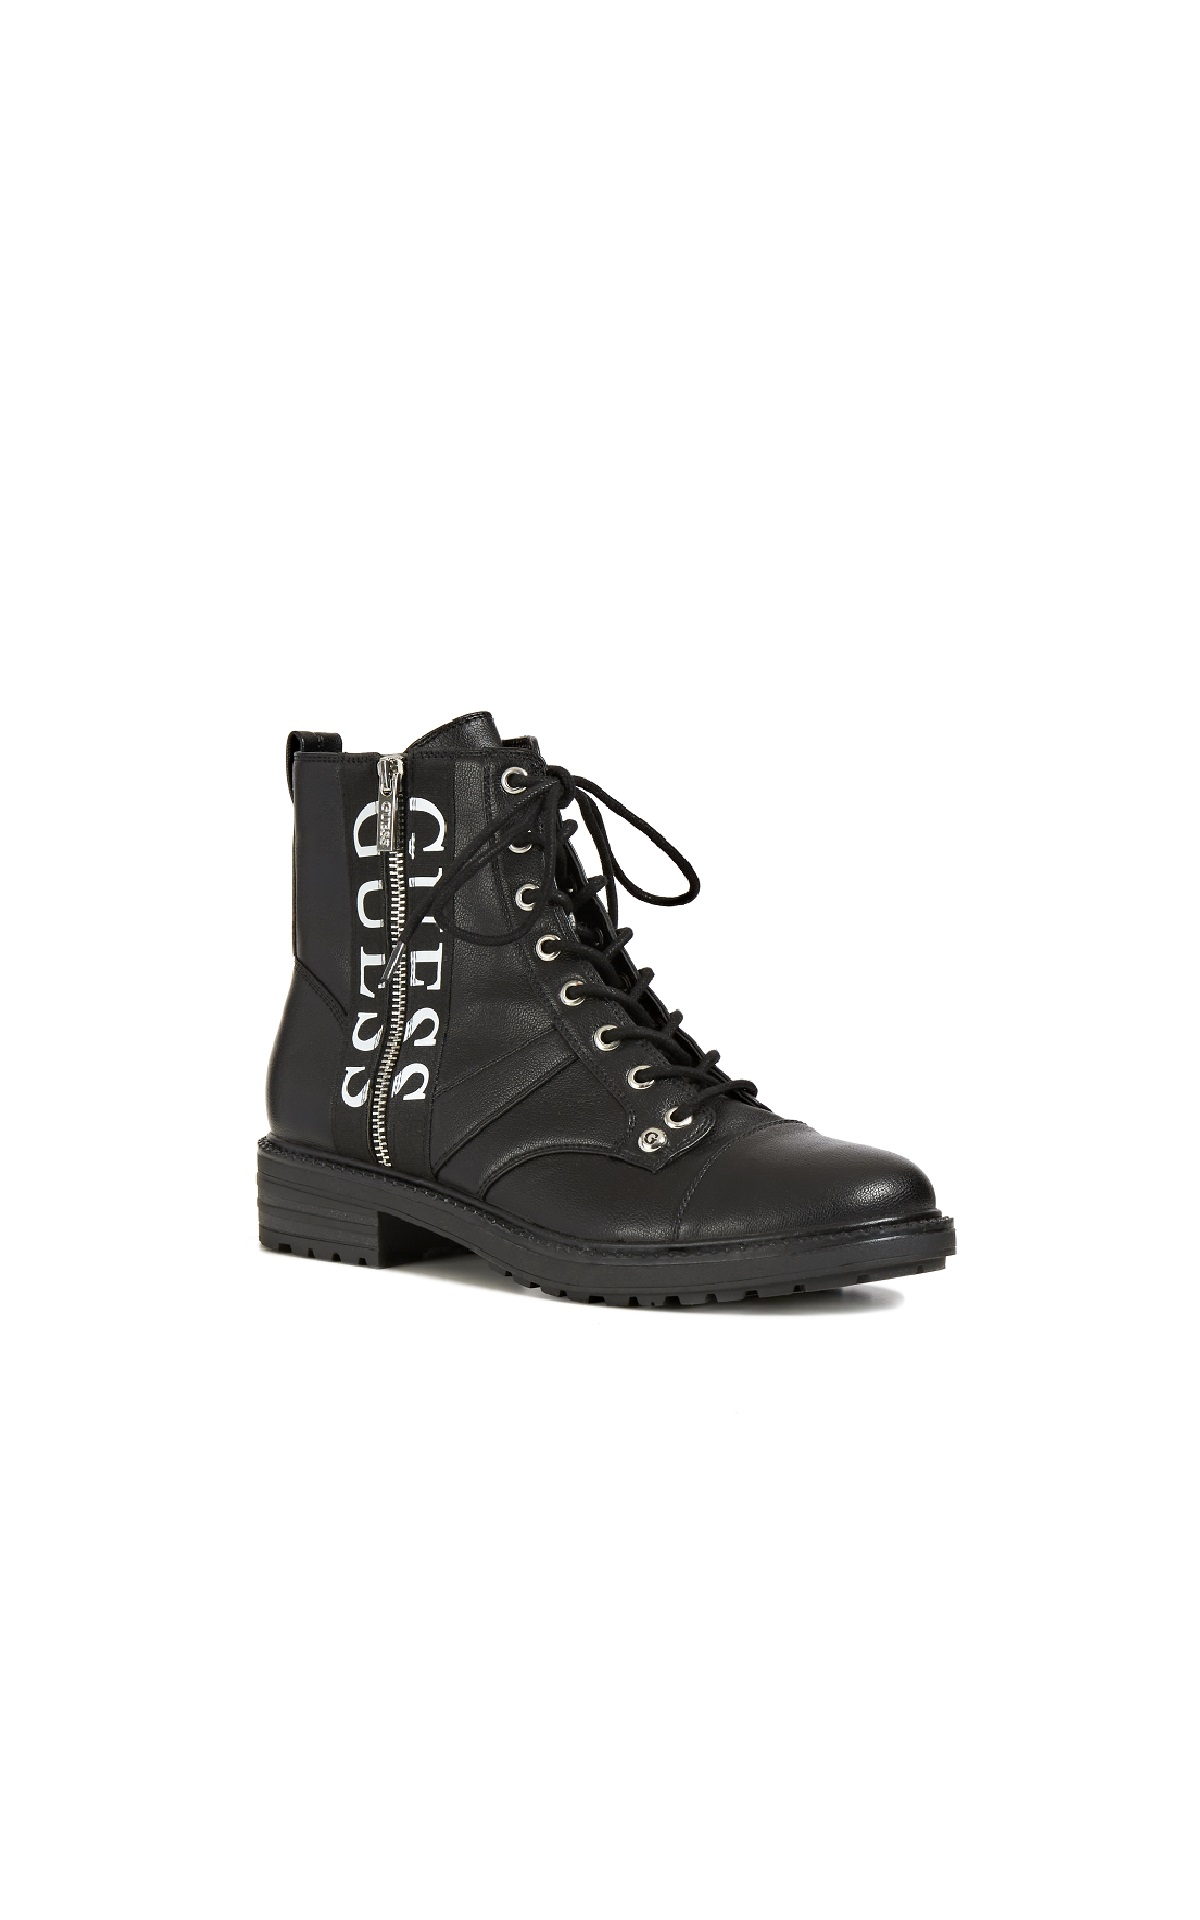 Black ankle boot with logo Guess